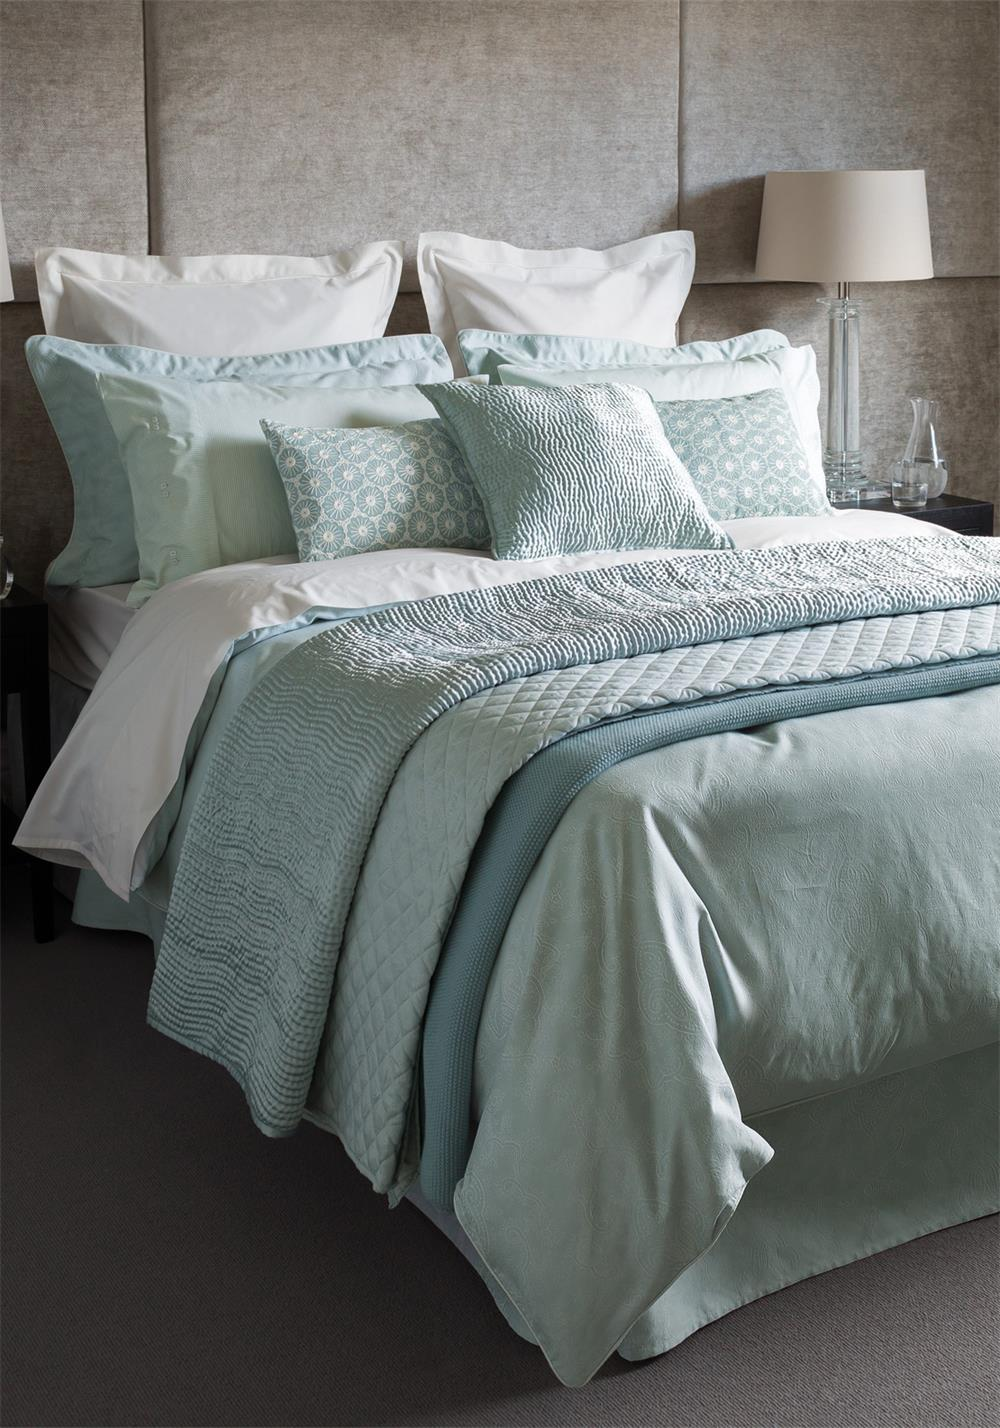 Fable Callista Duvet Cover, Duck Egg